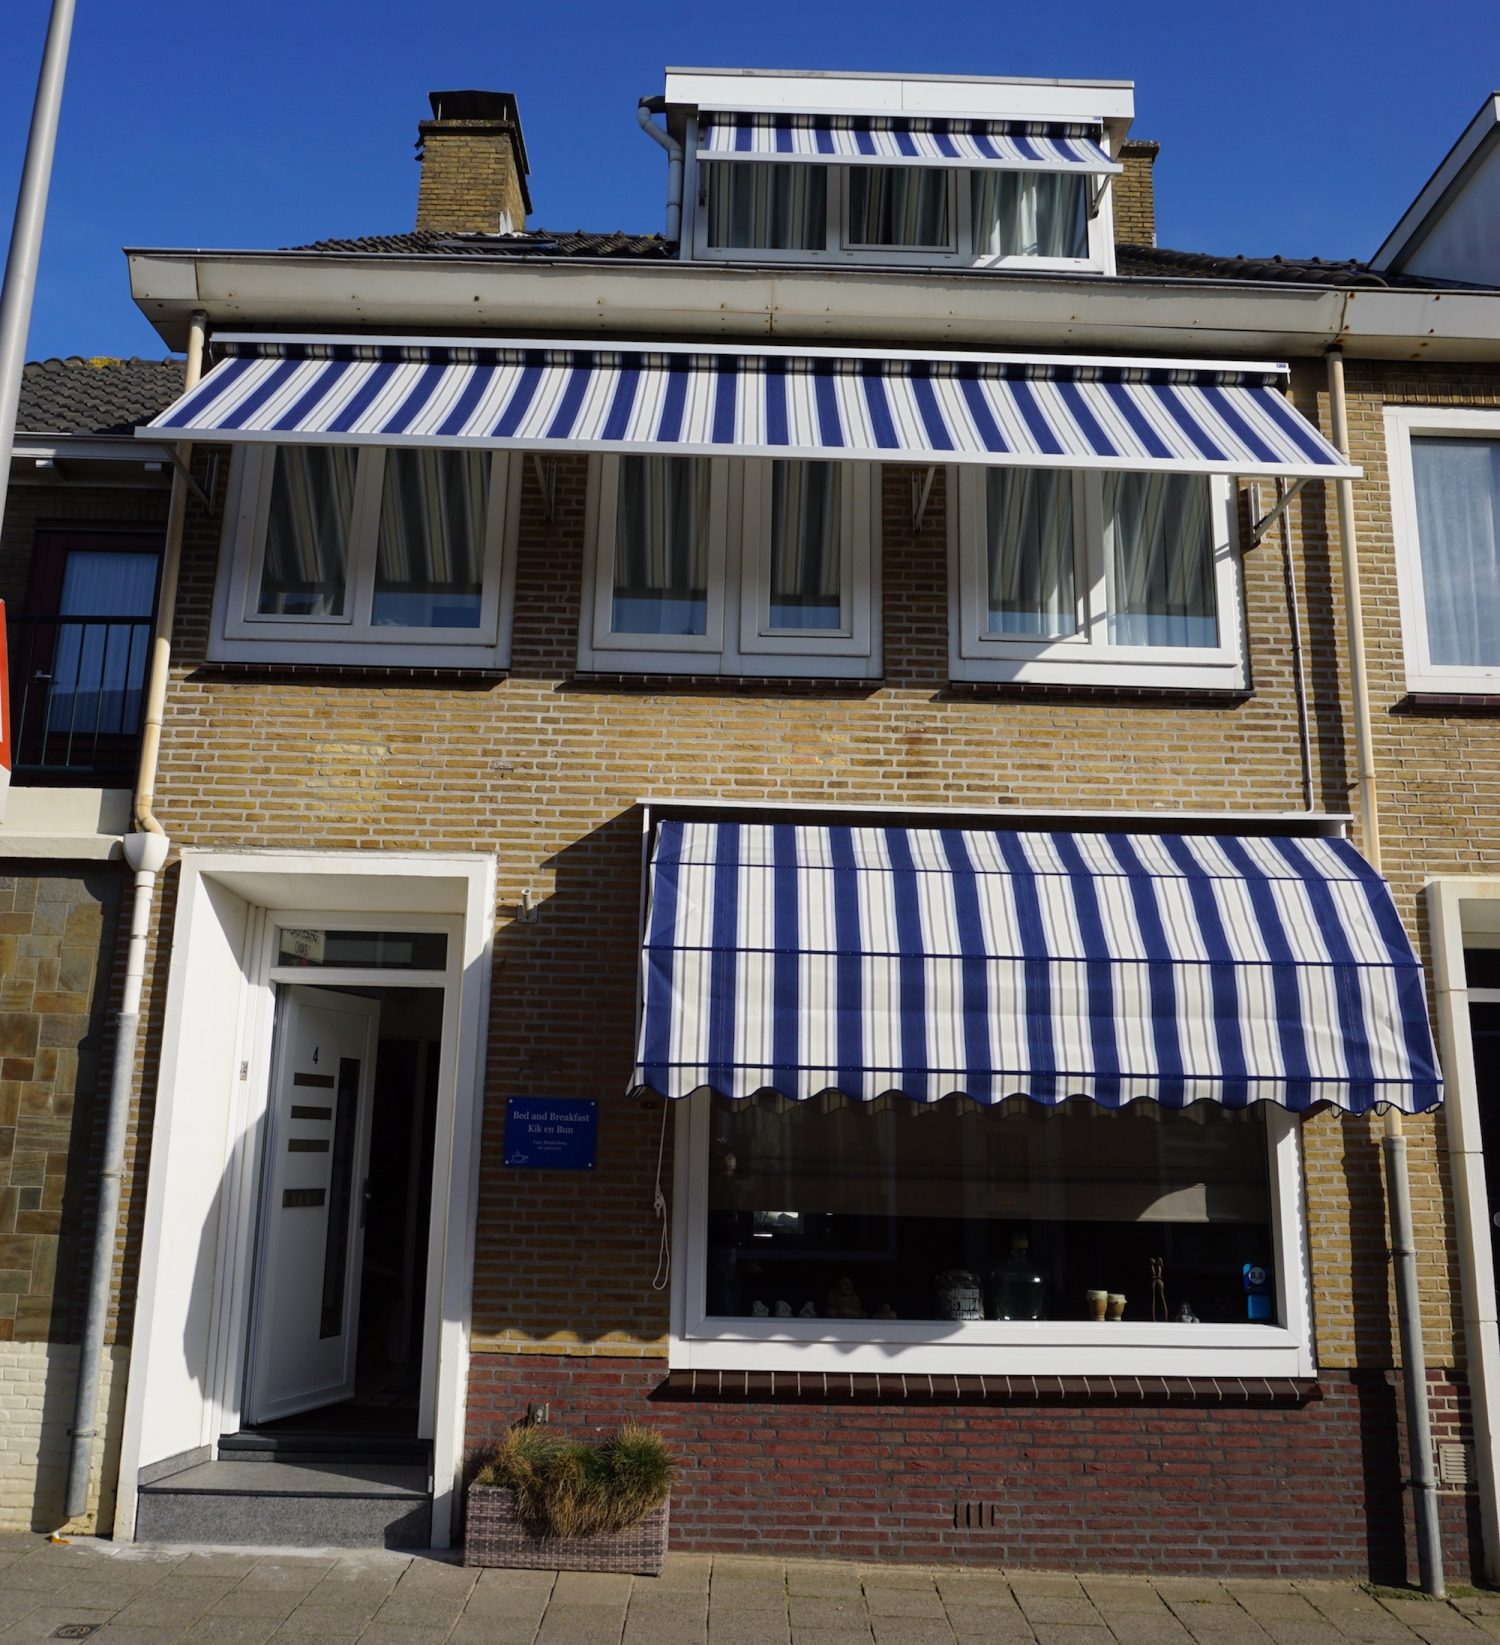 Bed and Breakfast Kik en Bun Katwijk aan Zee